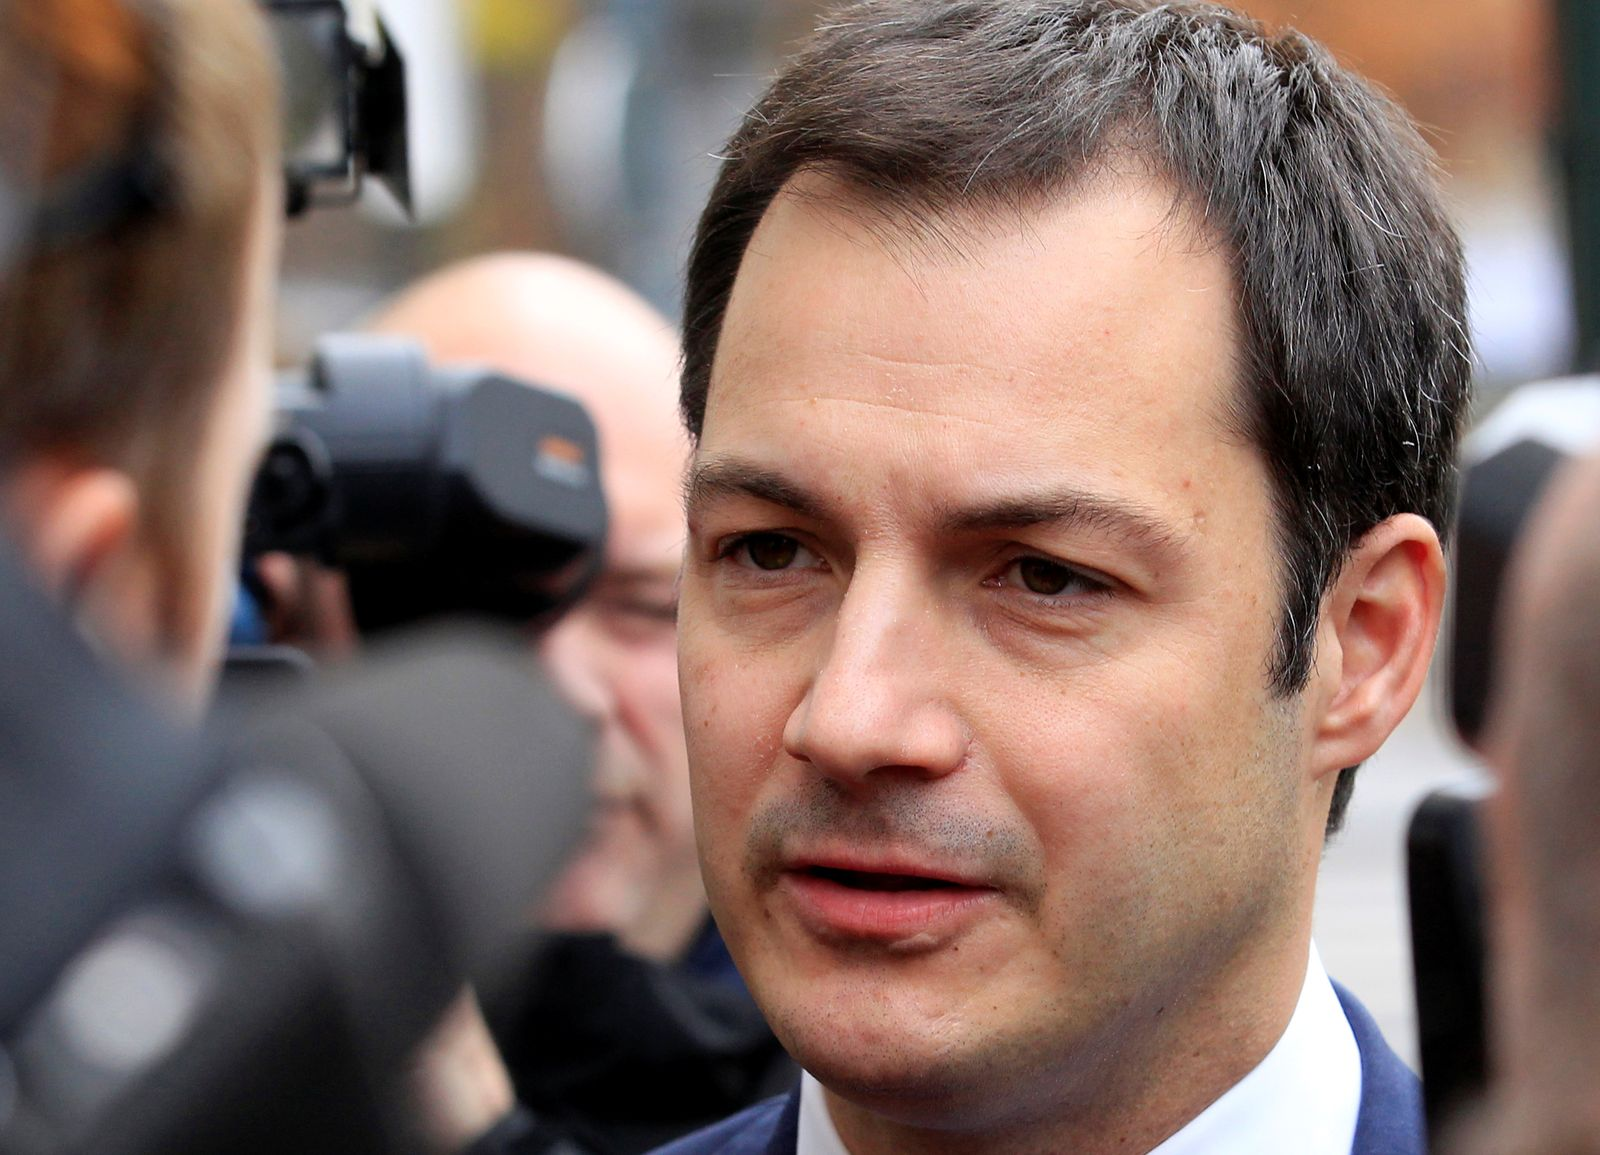 FILE PHOTO: Belgian Flemish Liberal party politician Alexander De Croo arrives at a cabinet meeting in Brussels